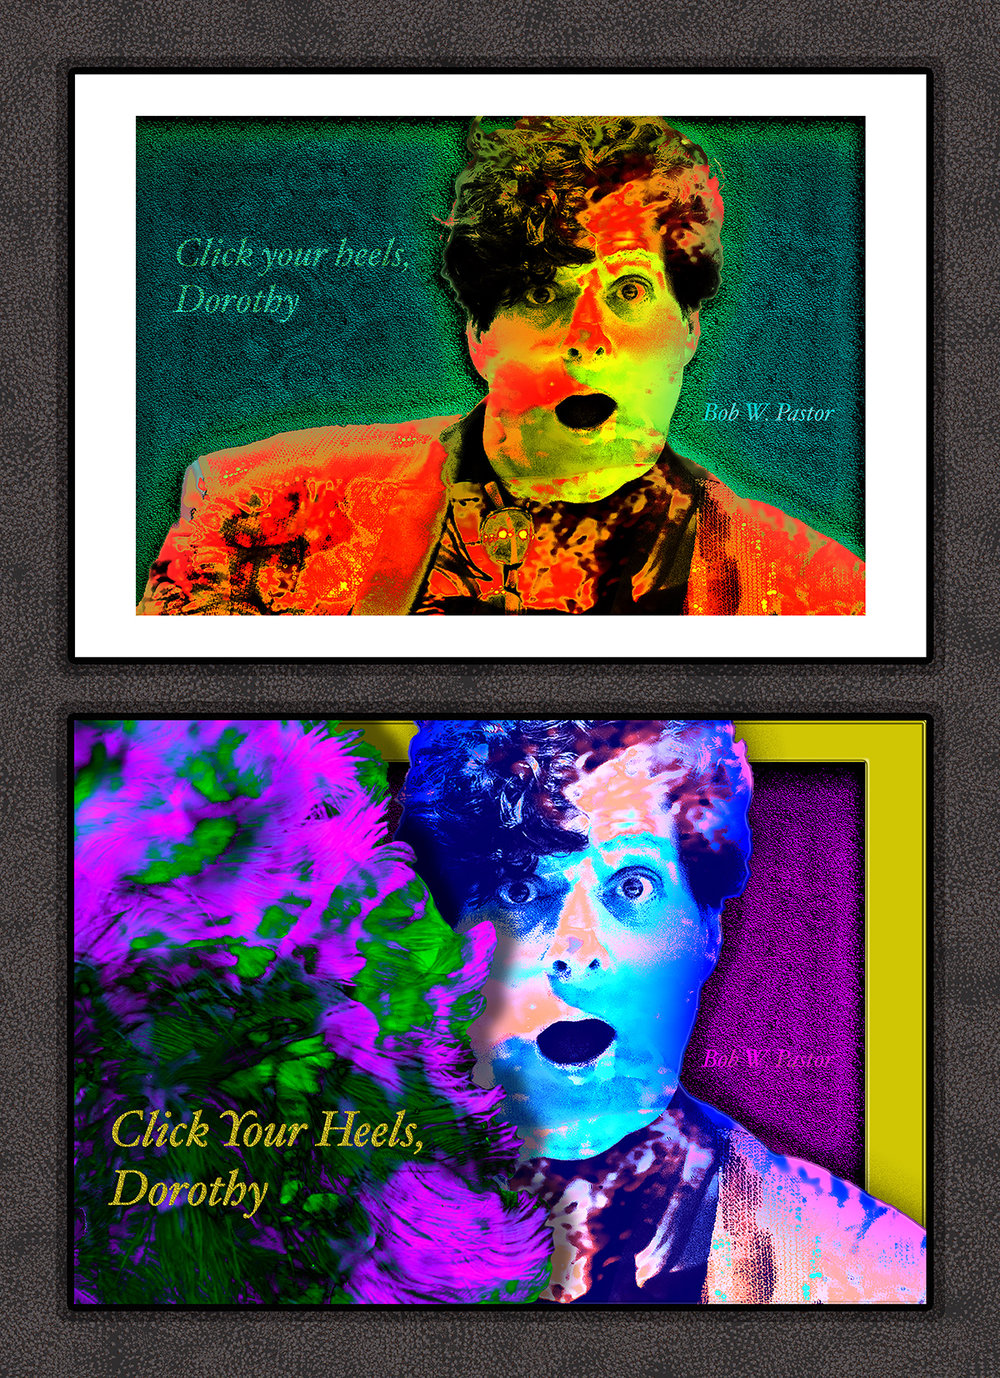 Bob W. Pastor - December 4, 1959 – December 6, 2015The top image was part of a limited series of 25 gallery prints accompanied by  certificates of authenticity signed by me, the artist. They were sold for $200 each with $100 of every purchase donated to St. Jude's Children's Hospital in Bob's name.The bottom image was presented to Bob's surviving partner, Randy, as a one of a kind gallery print accompanied by a certificate of authenticity.